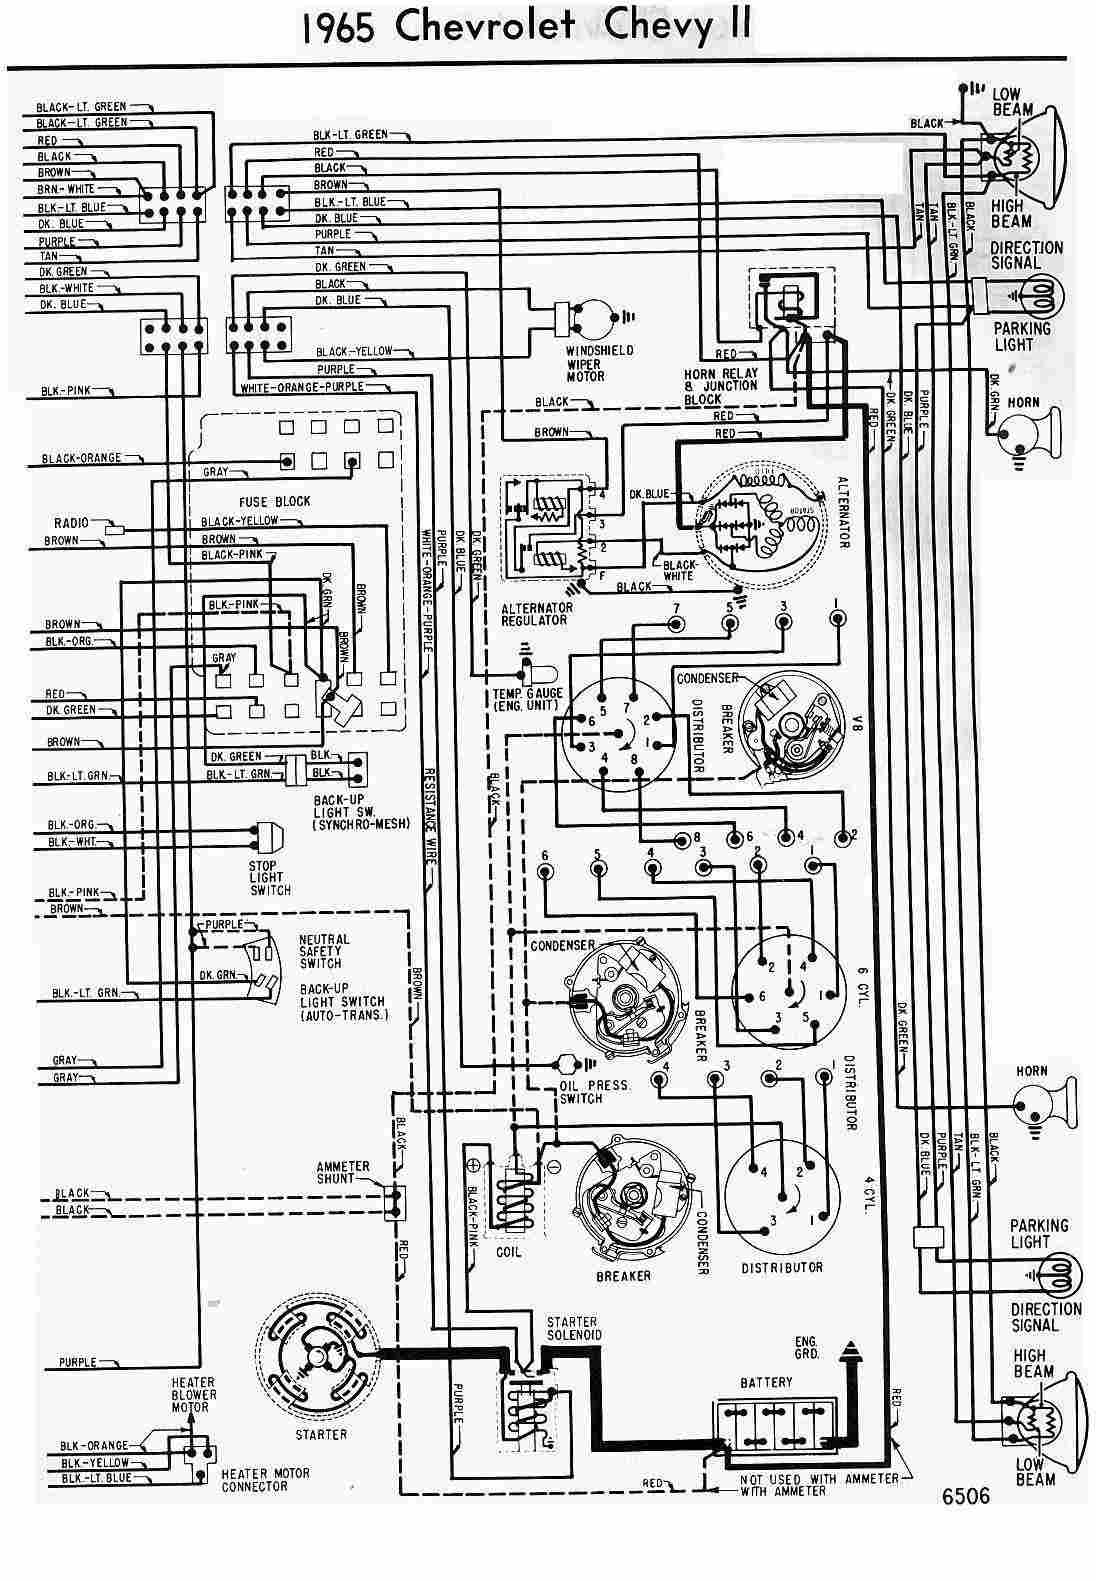 small resolution of 65 chevy c10 wiring diagram 1965 truck wiring diagram centre65 chevy c10 wiring diagram 1965 truck